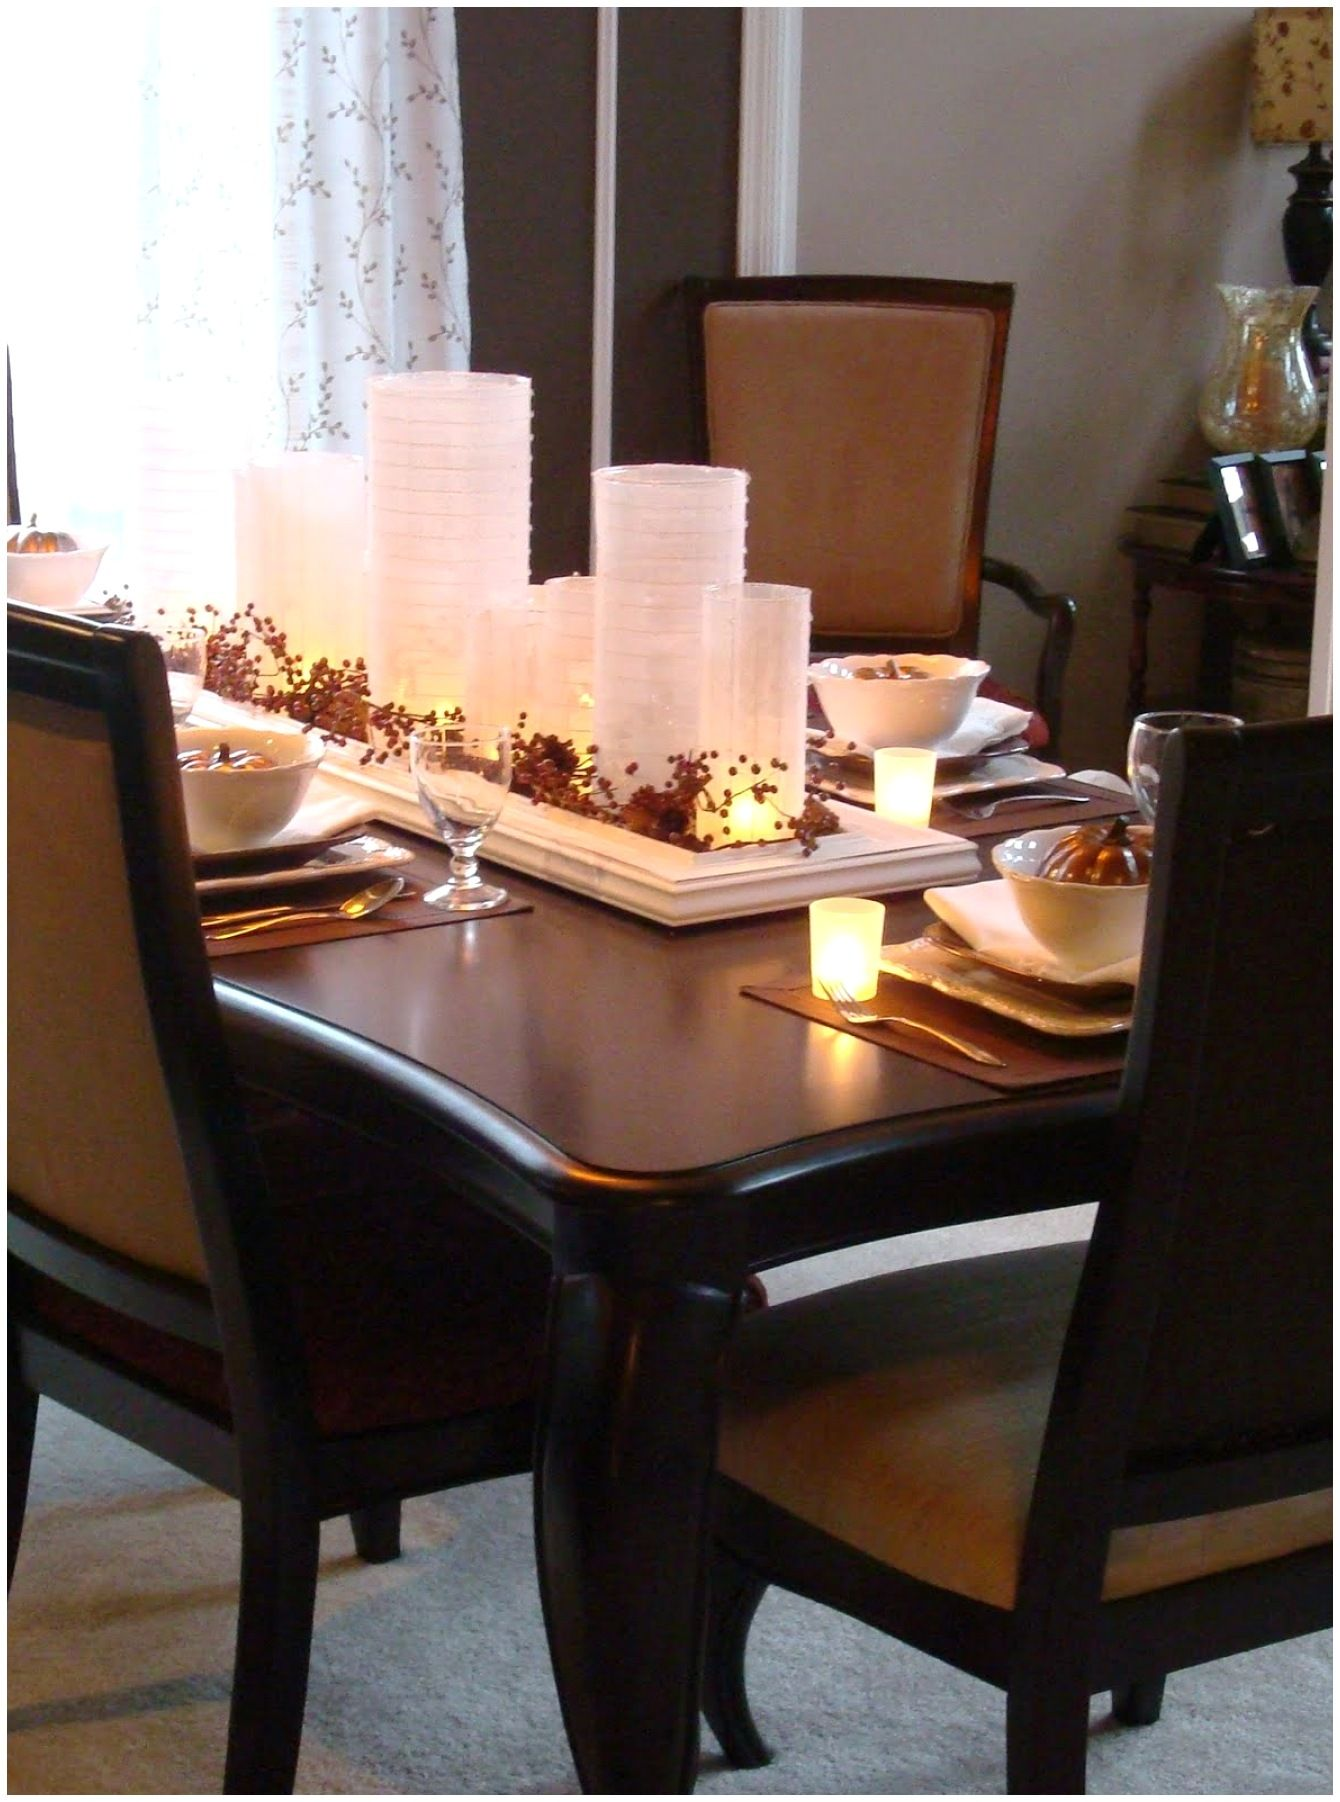 Attractive Centerpieces For Dining Room Tables To Create In 2021 Dining Table Centerpiece Dining Room Table Candle Centerpiece Dining Room Table Candles